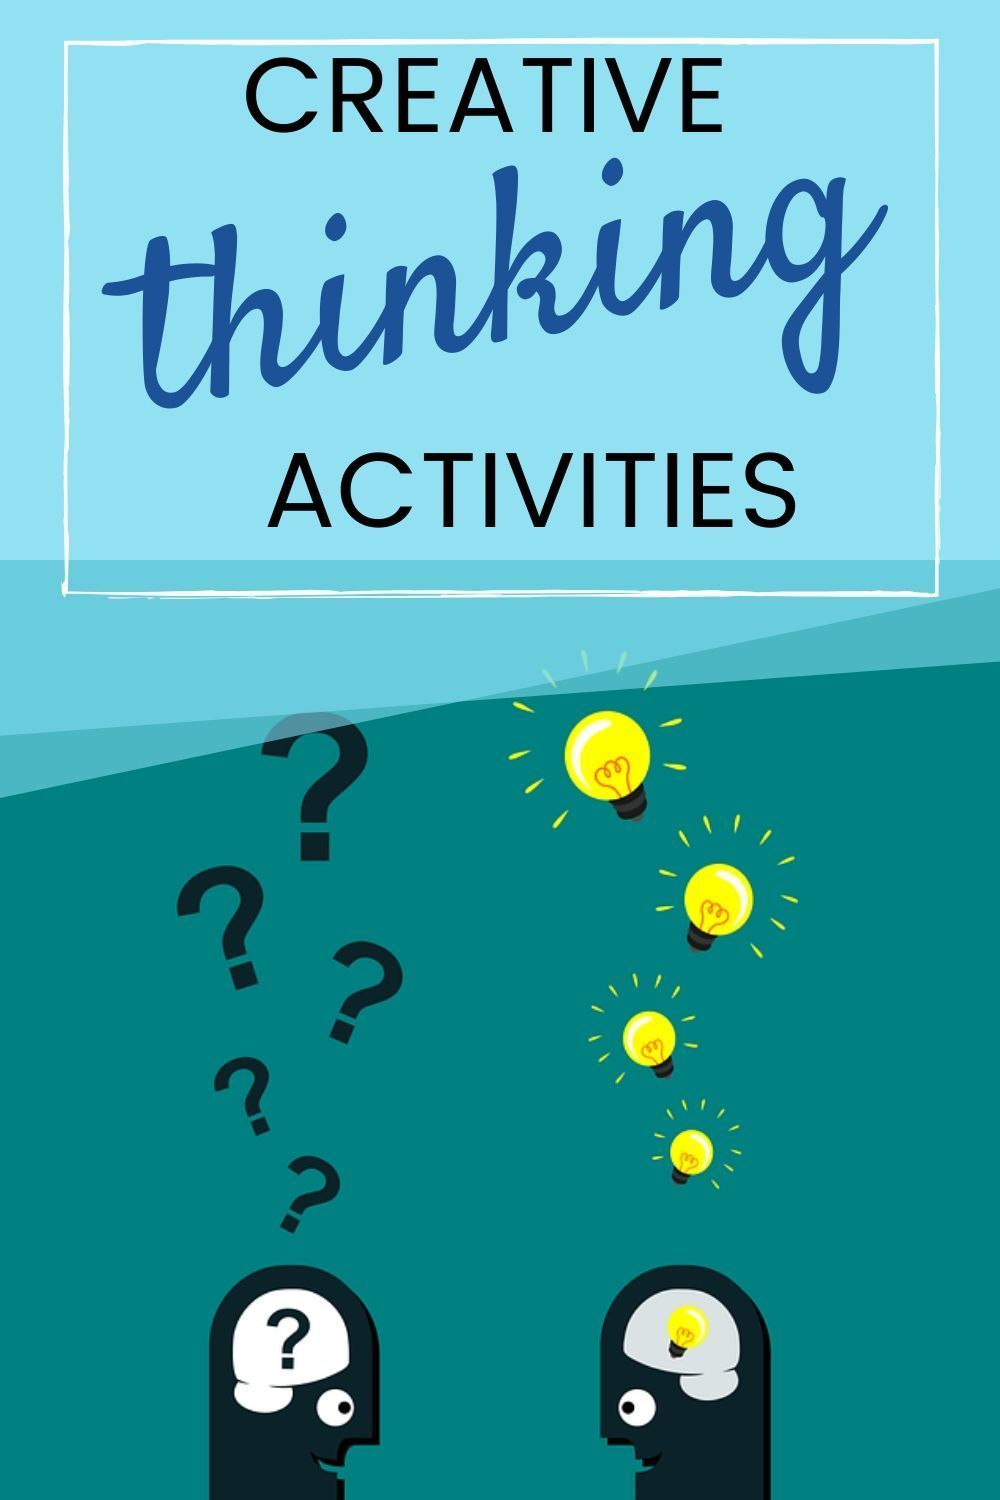 Creative Thinking Activities For Students In 2020 Creative Thinking Activities Student Activities Higher Order Thinking Skills